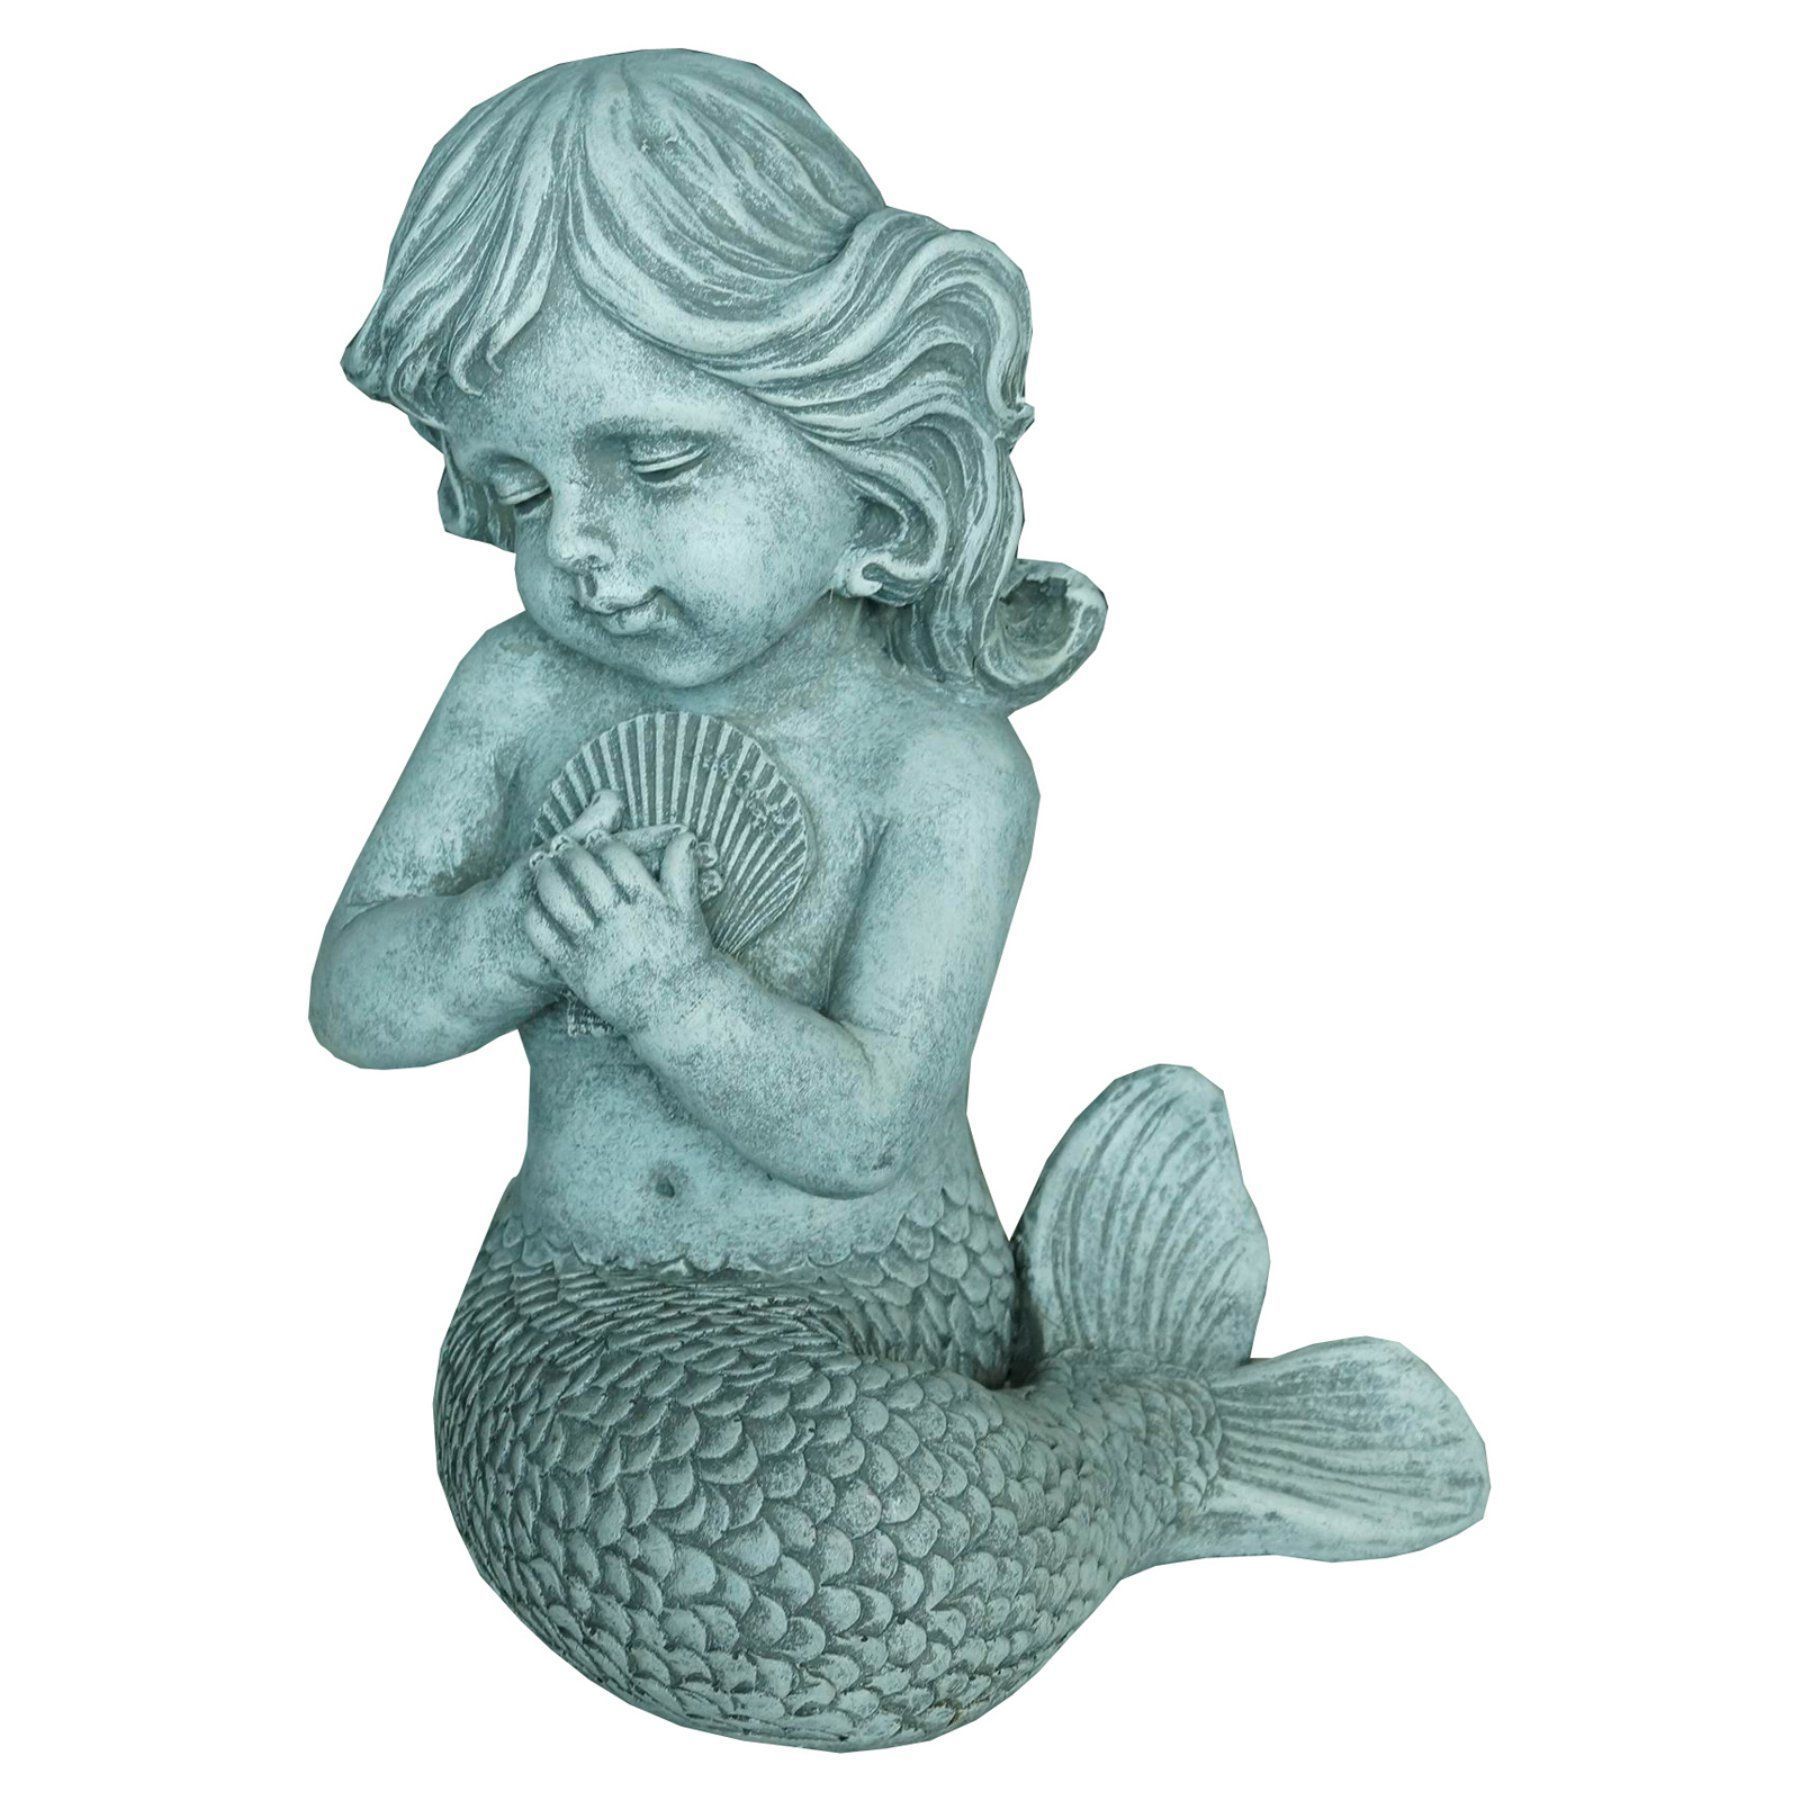 Hi Line Mermaid Kneeling And Holding Shell Statue 75598 Garden Statues Statue Outdoor Statues